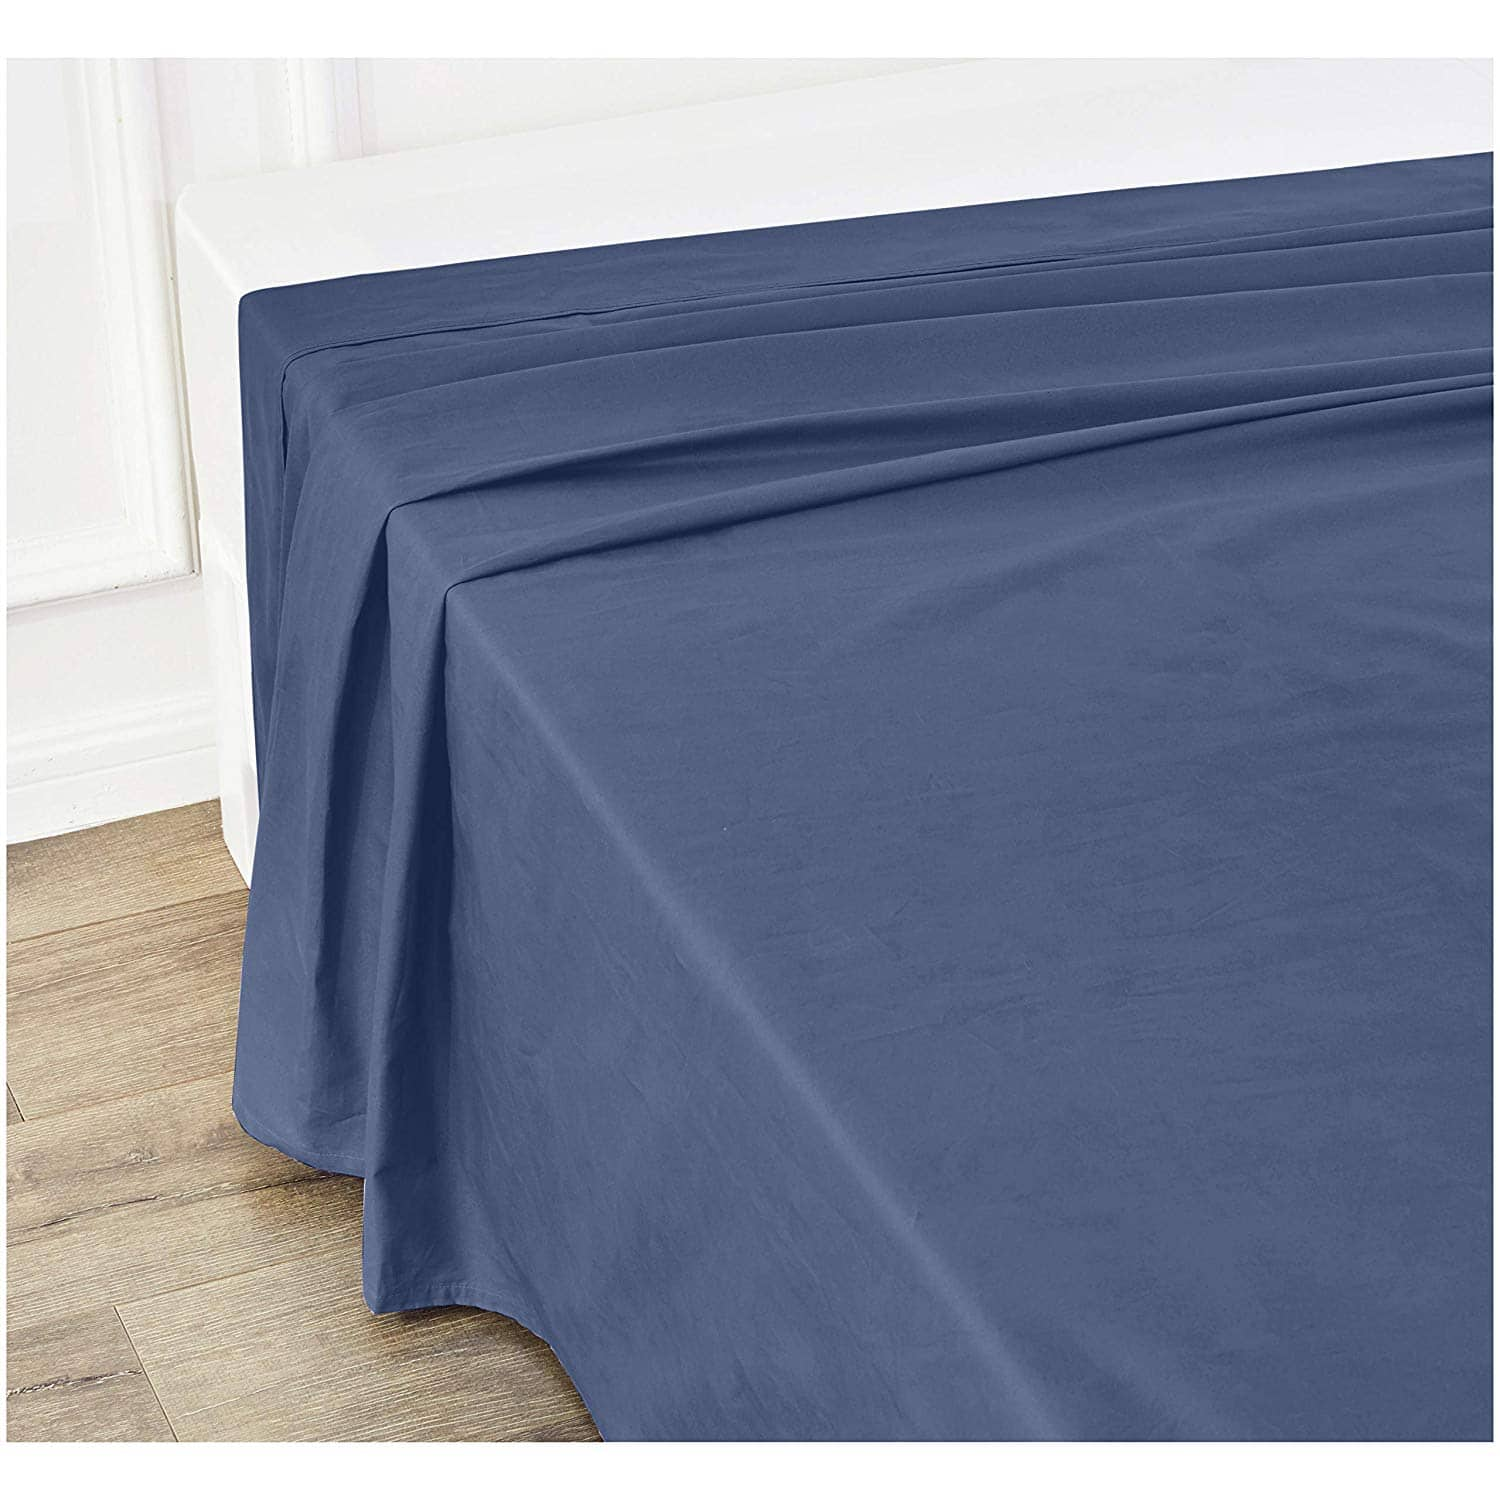 HOT!  Ultra-Soft Flat Sheet - Breathable, Easy to Wash - Queen, Midnight Blue $4.28